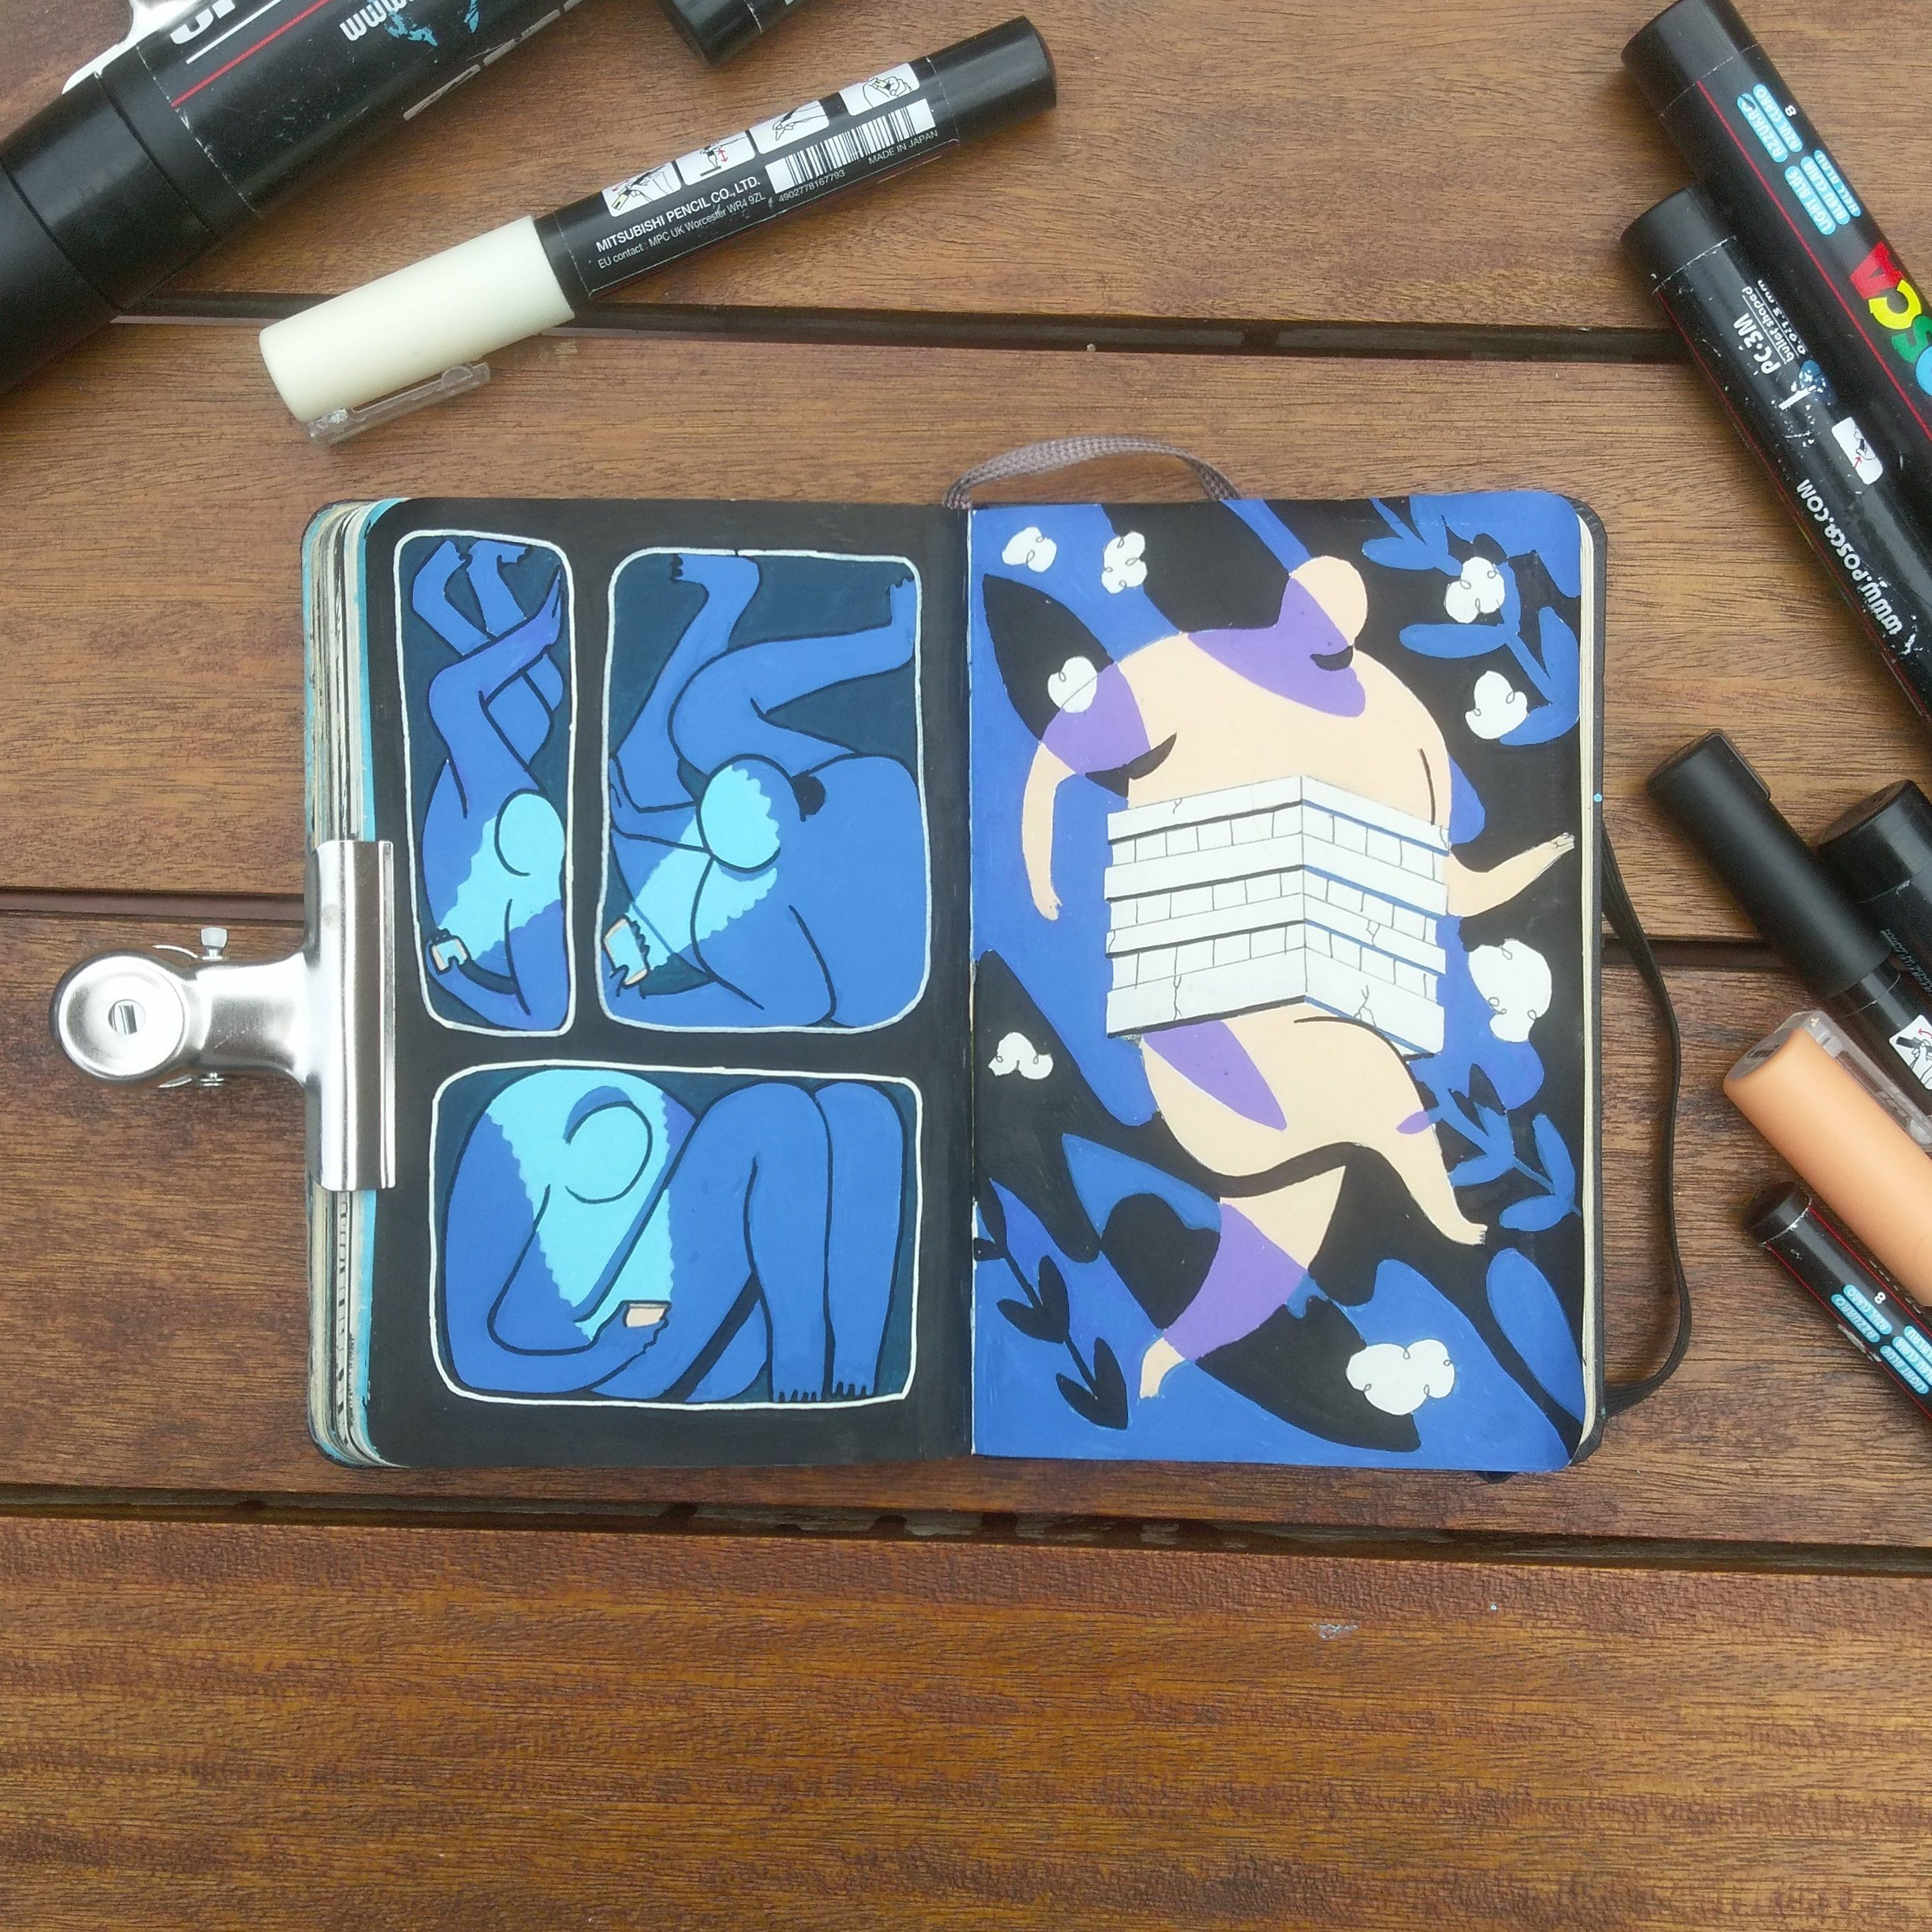 Thomas D'Addario Likes To Fill Up His Moleskines With